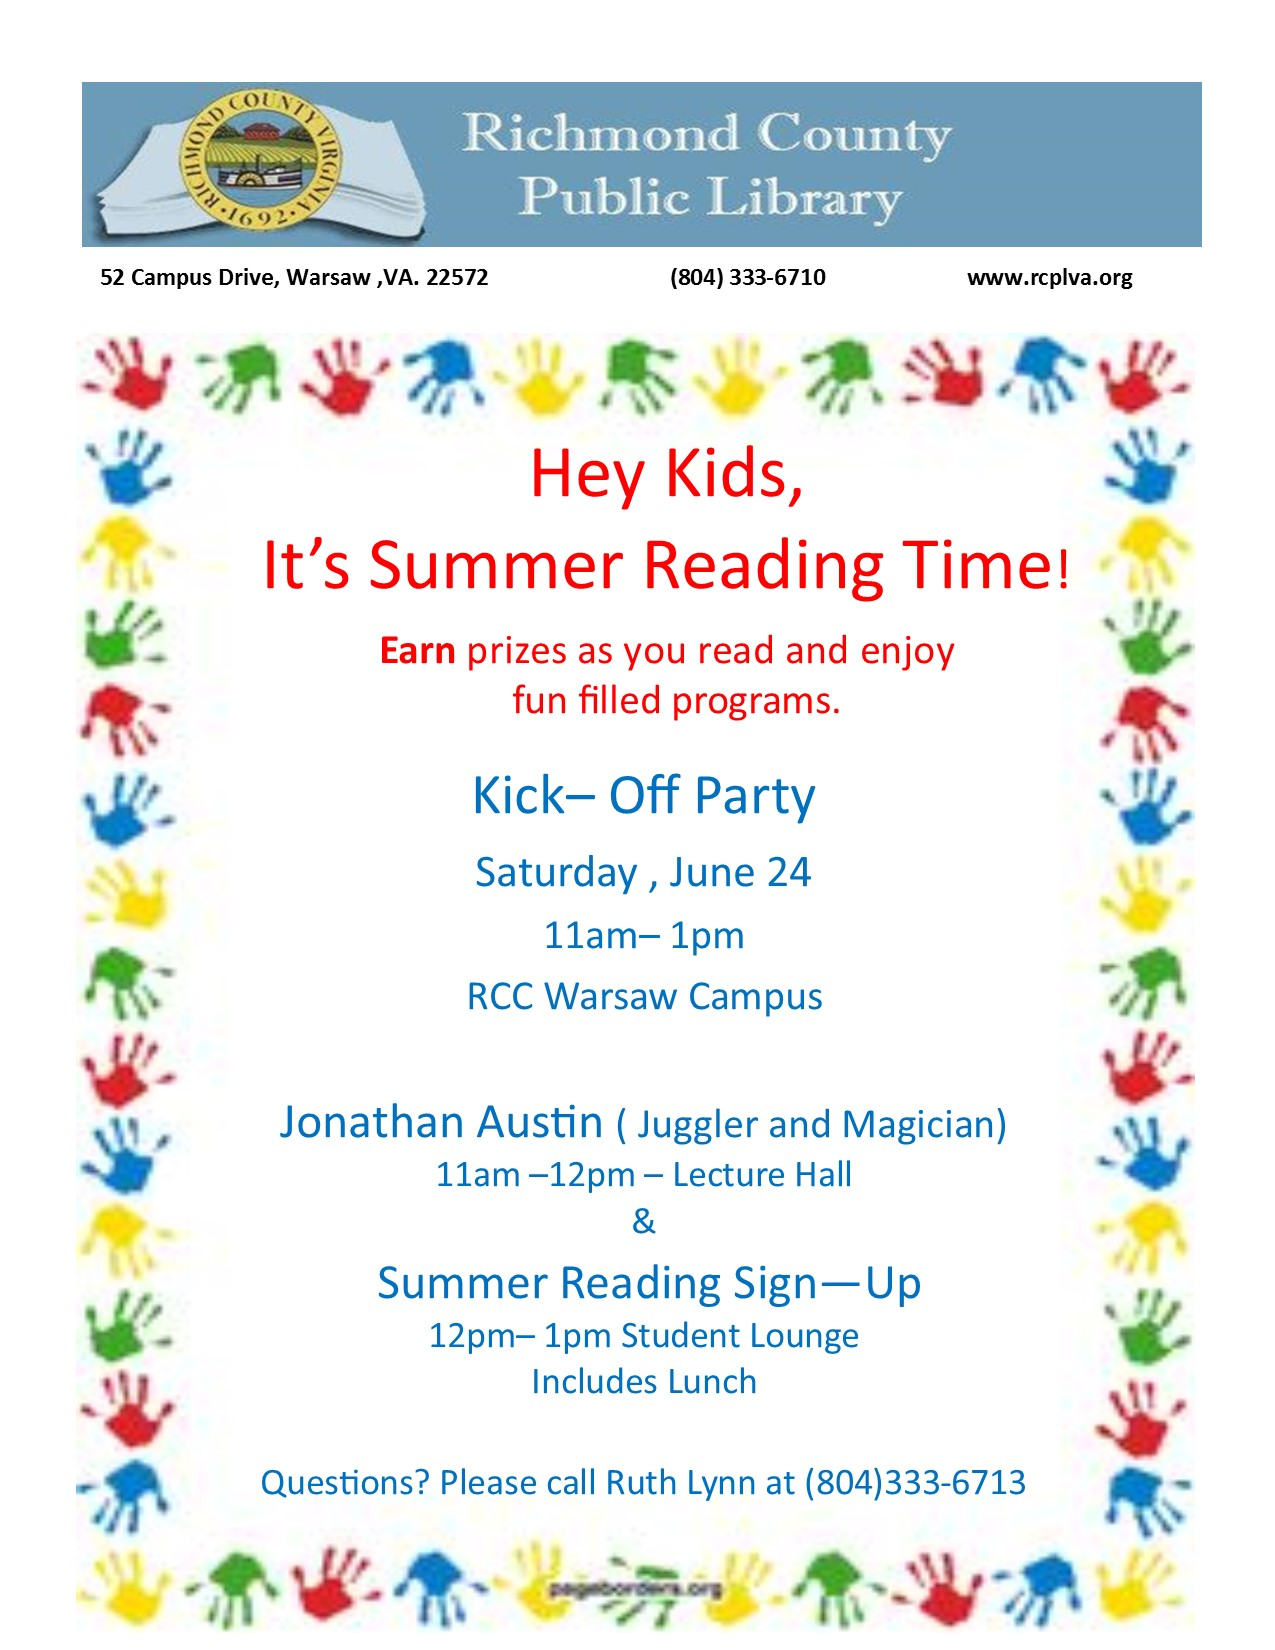 Summer Reading Kick Off Party!!! @ Richmond County Public LIbrary